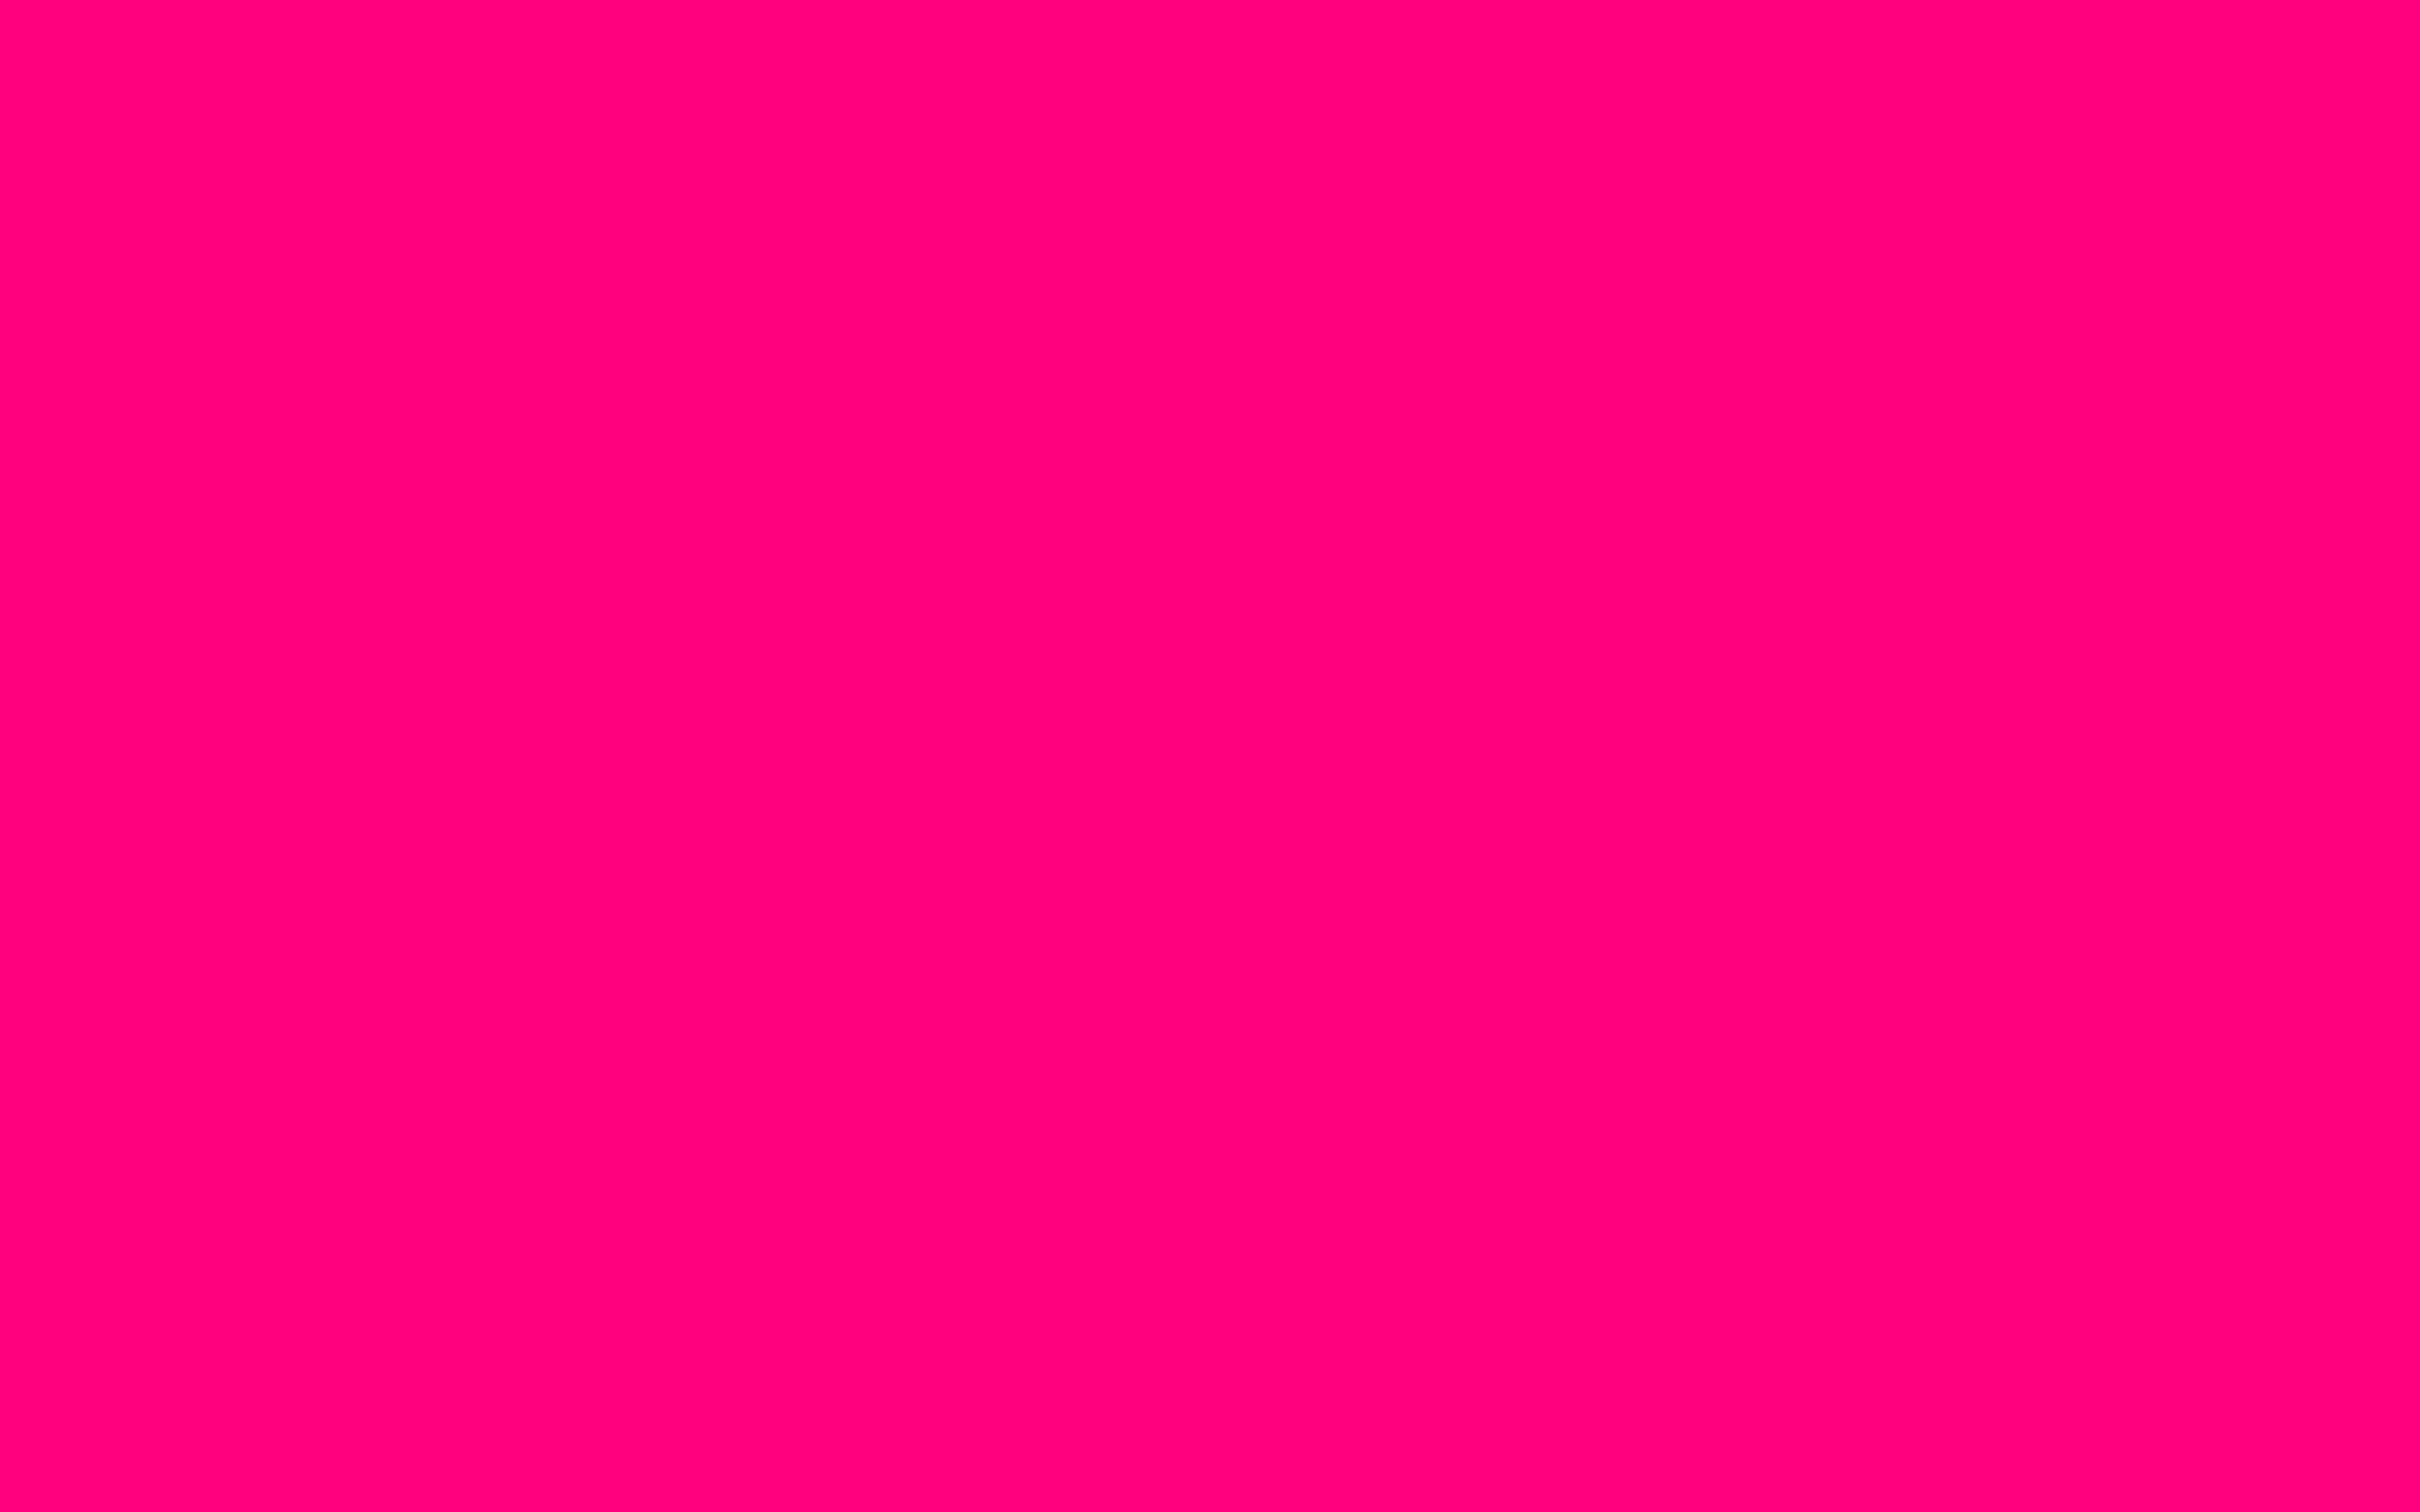 2560x1600 Bright Pink Solid Color Background